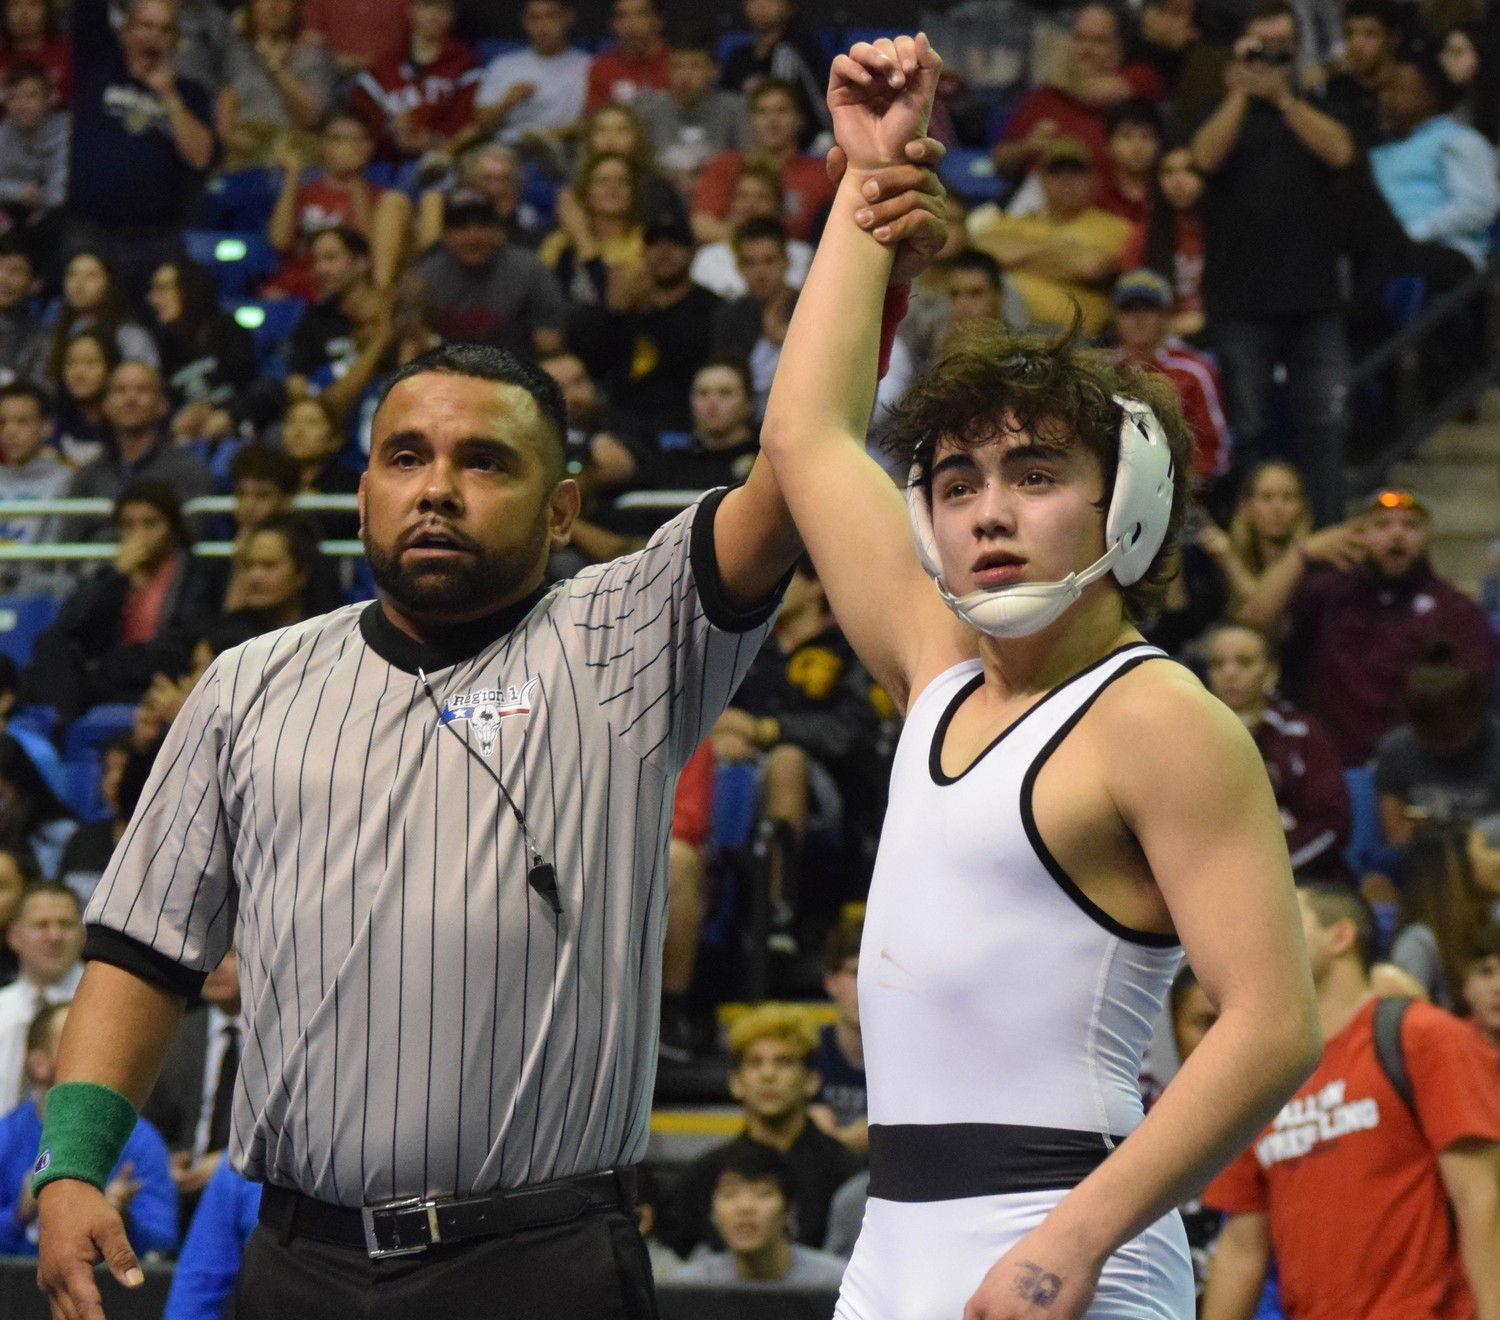 Vandegrift freshman Noah Gochberg beat Allen junior Gabe Martinez 7-6 in the 113-pound state championship match on Saturday afternoon.